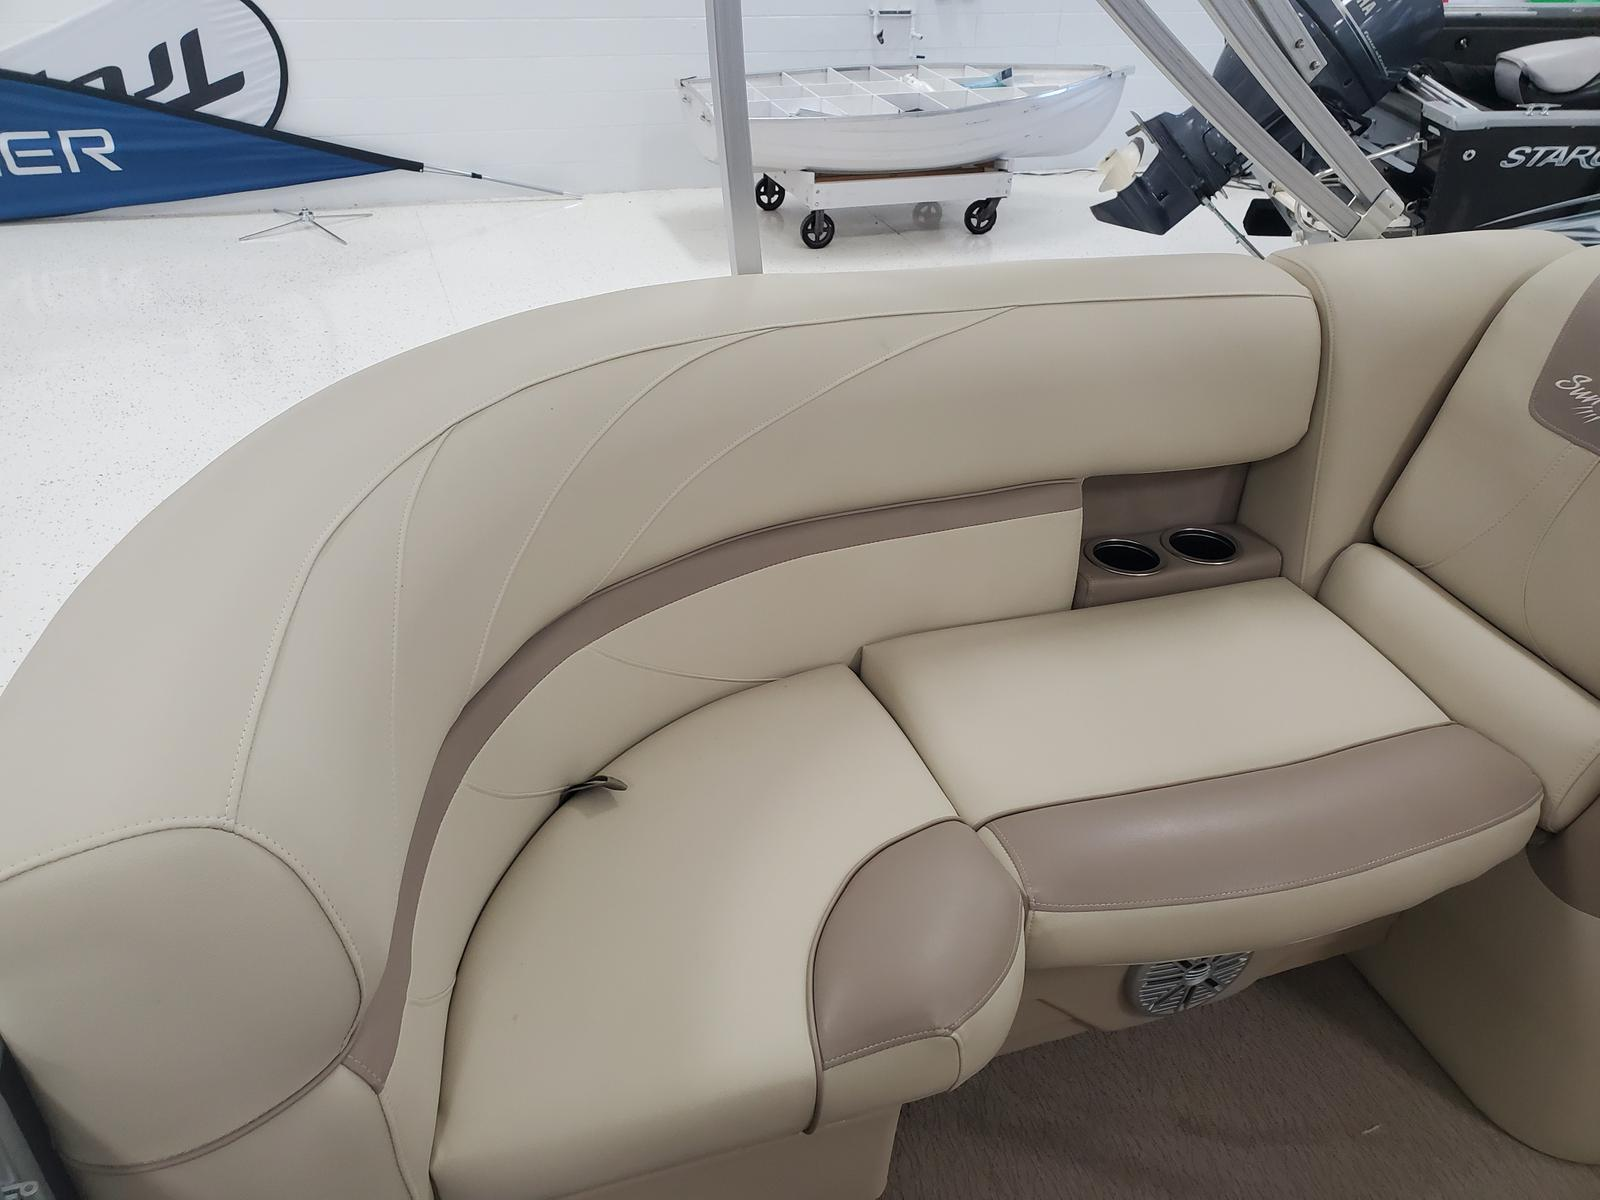 2018 SunChaser boat for sale, model of the boat is Geneva Cruise 20 LR DH & Image # 6 of 11